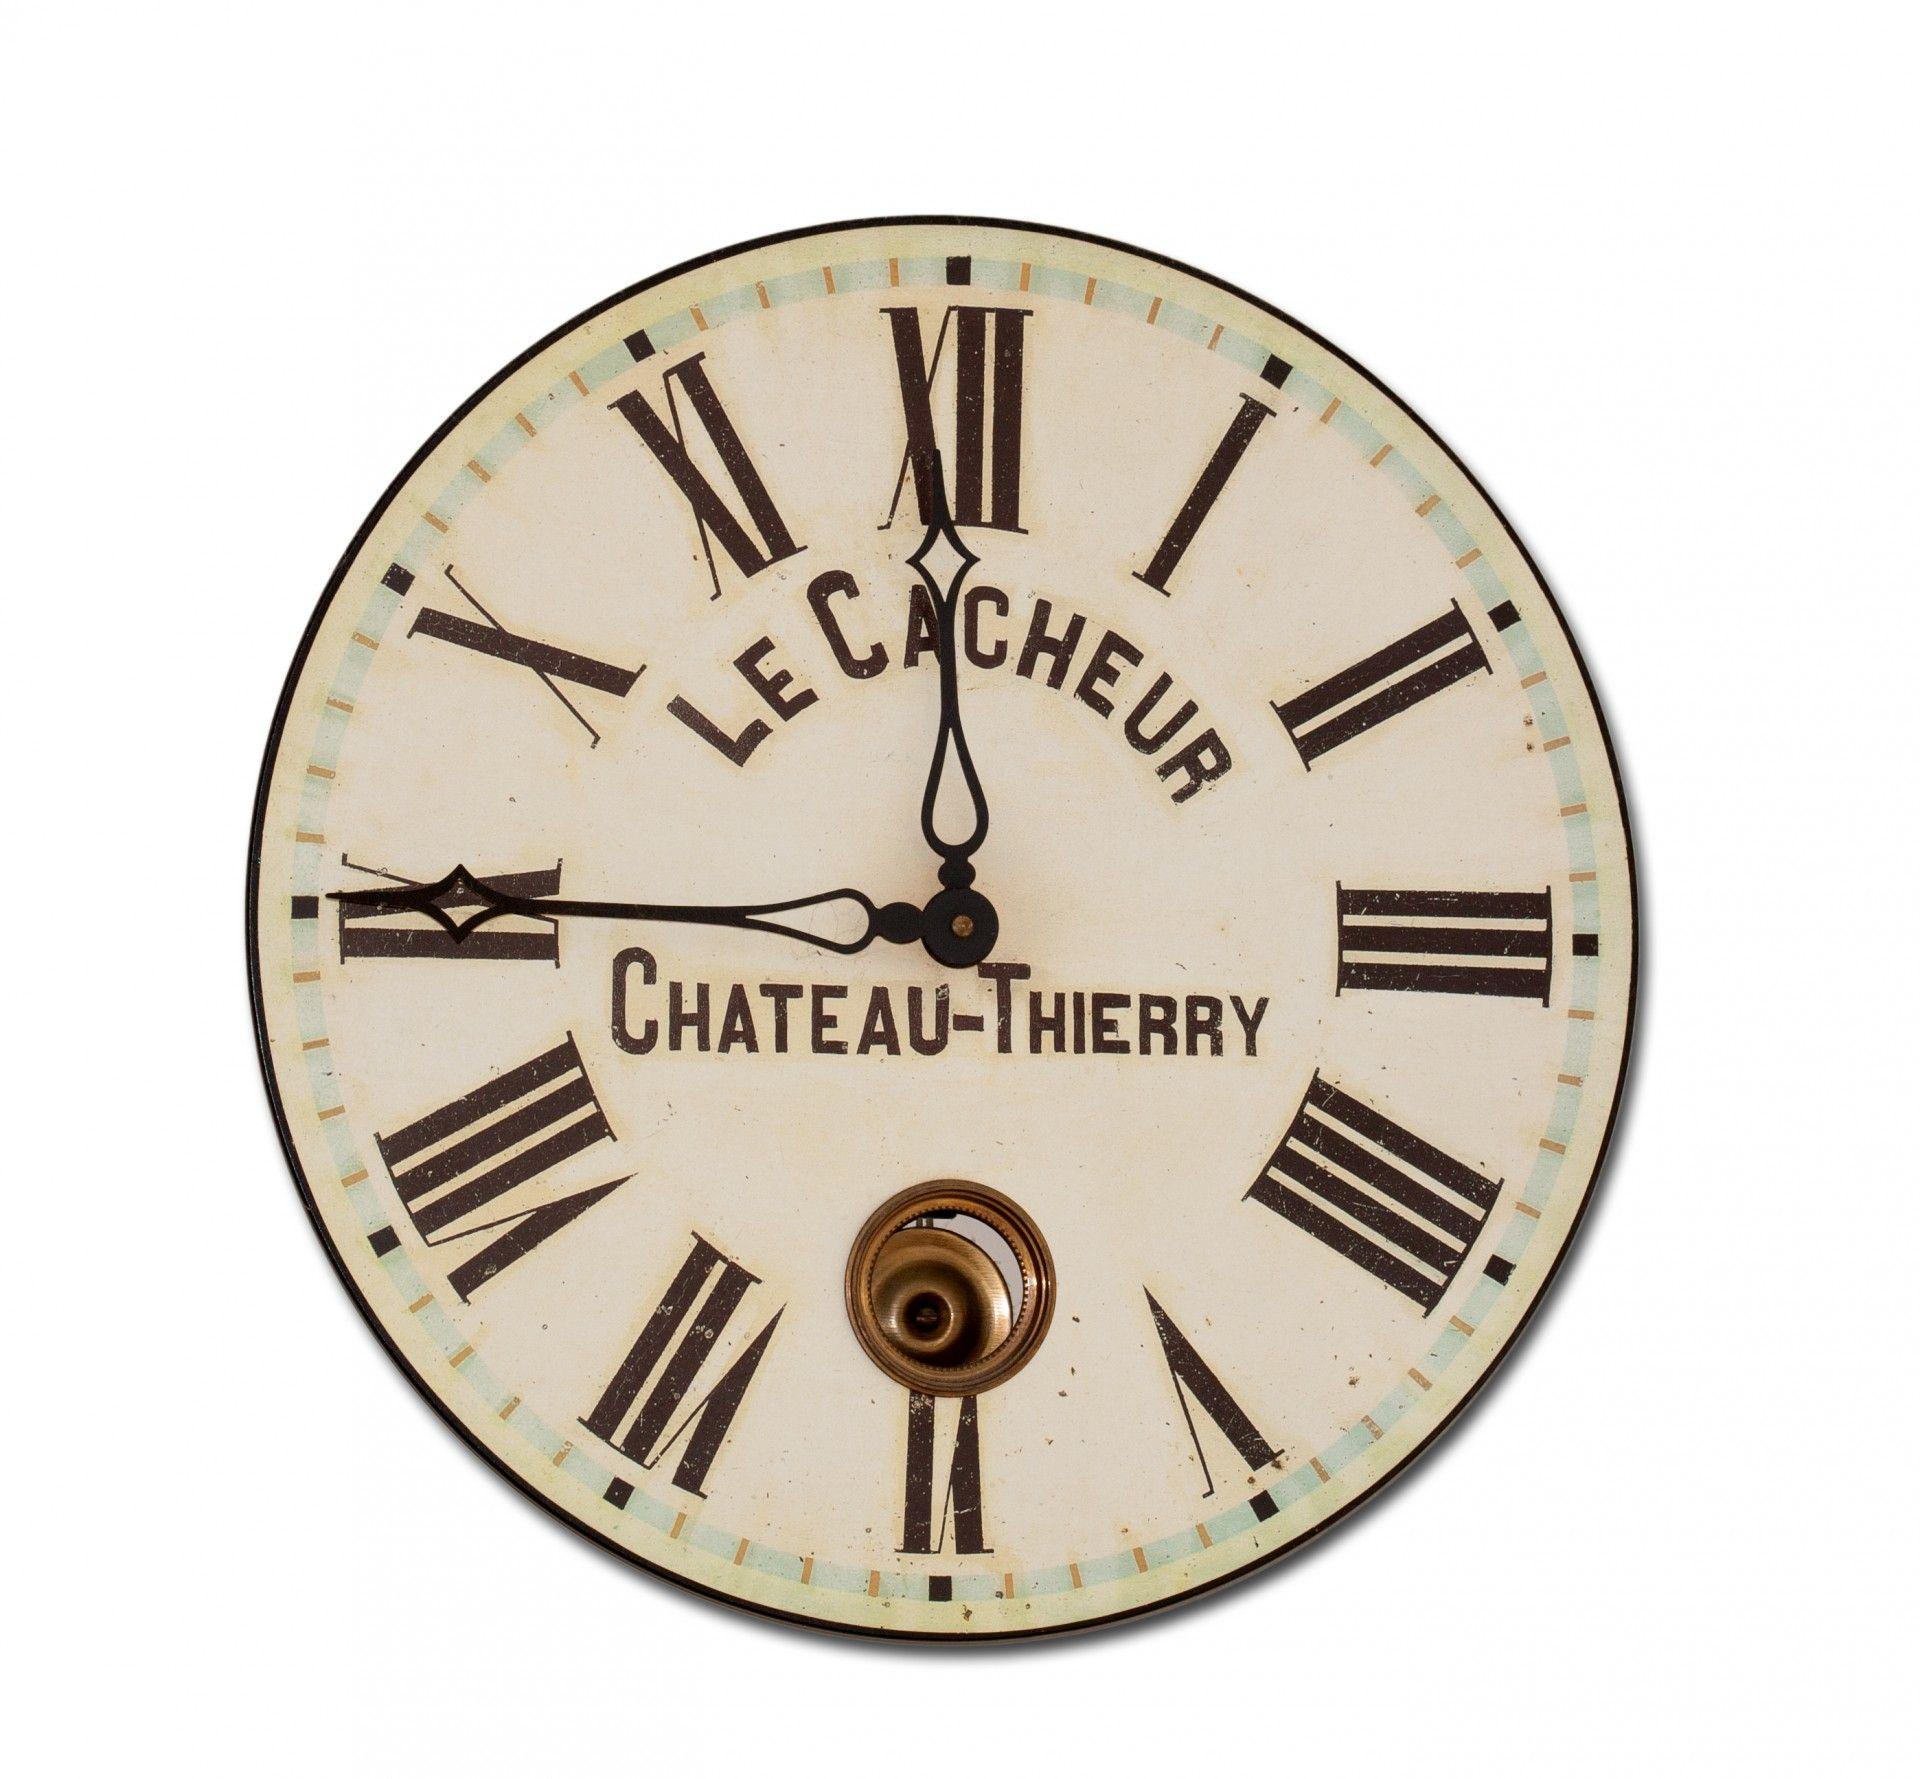 vintage french wall clock wallpaper download full free